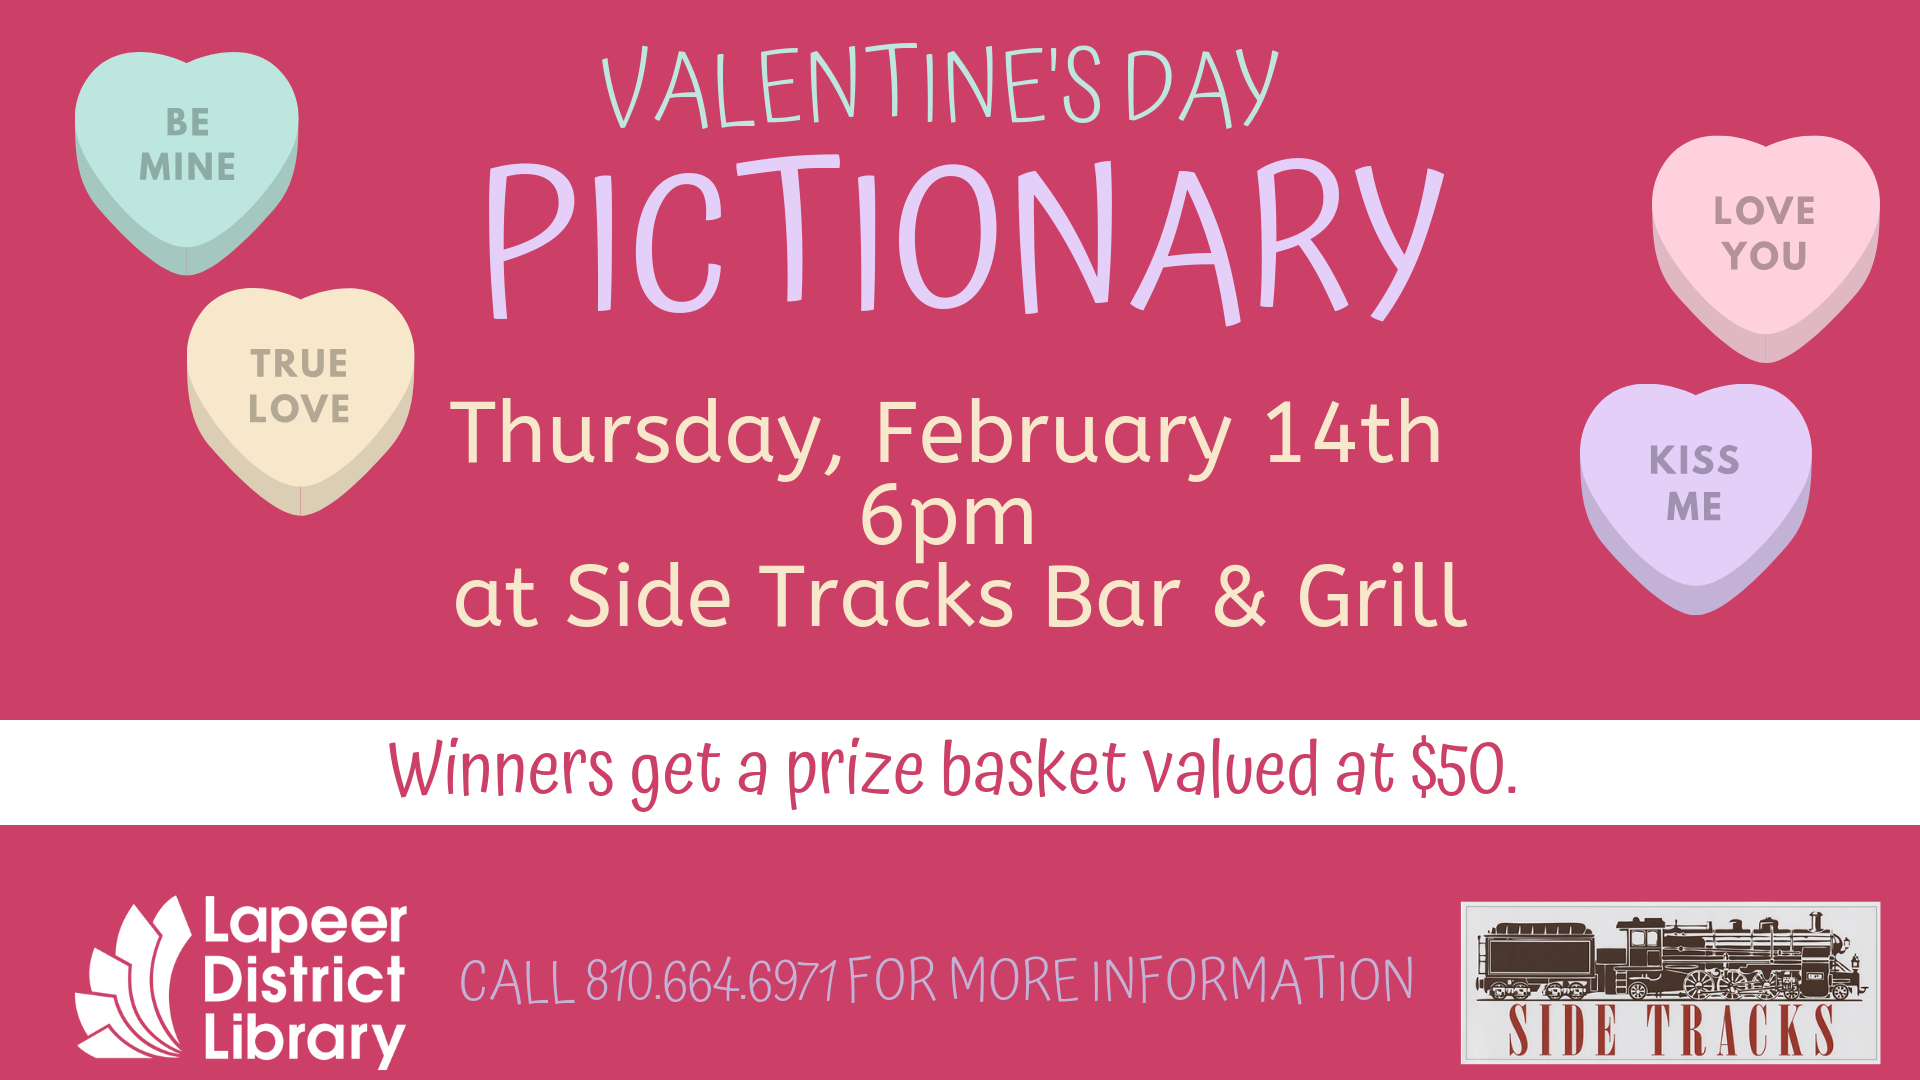 Valentine's Day Pictionary at Side Tracks Bar & Grill